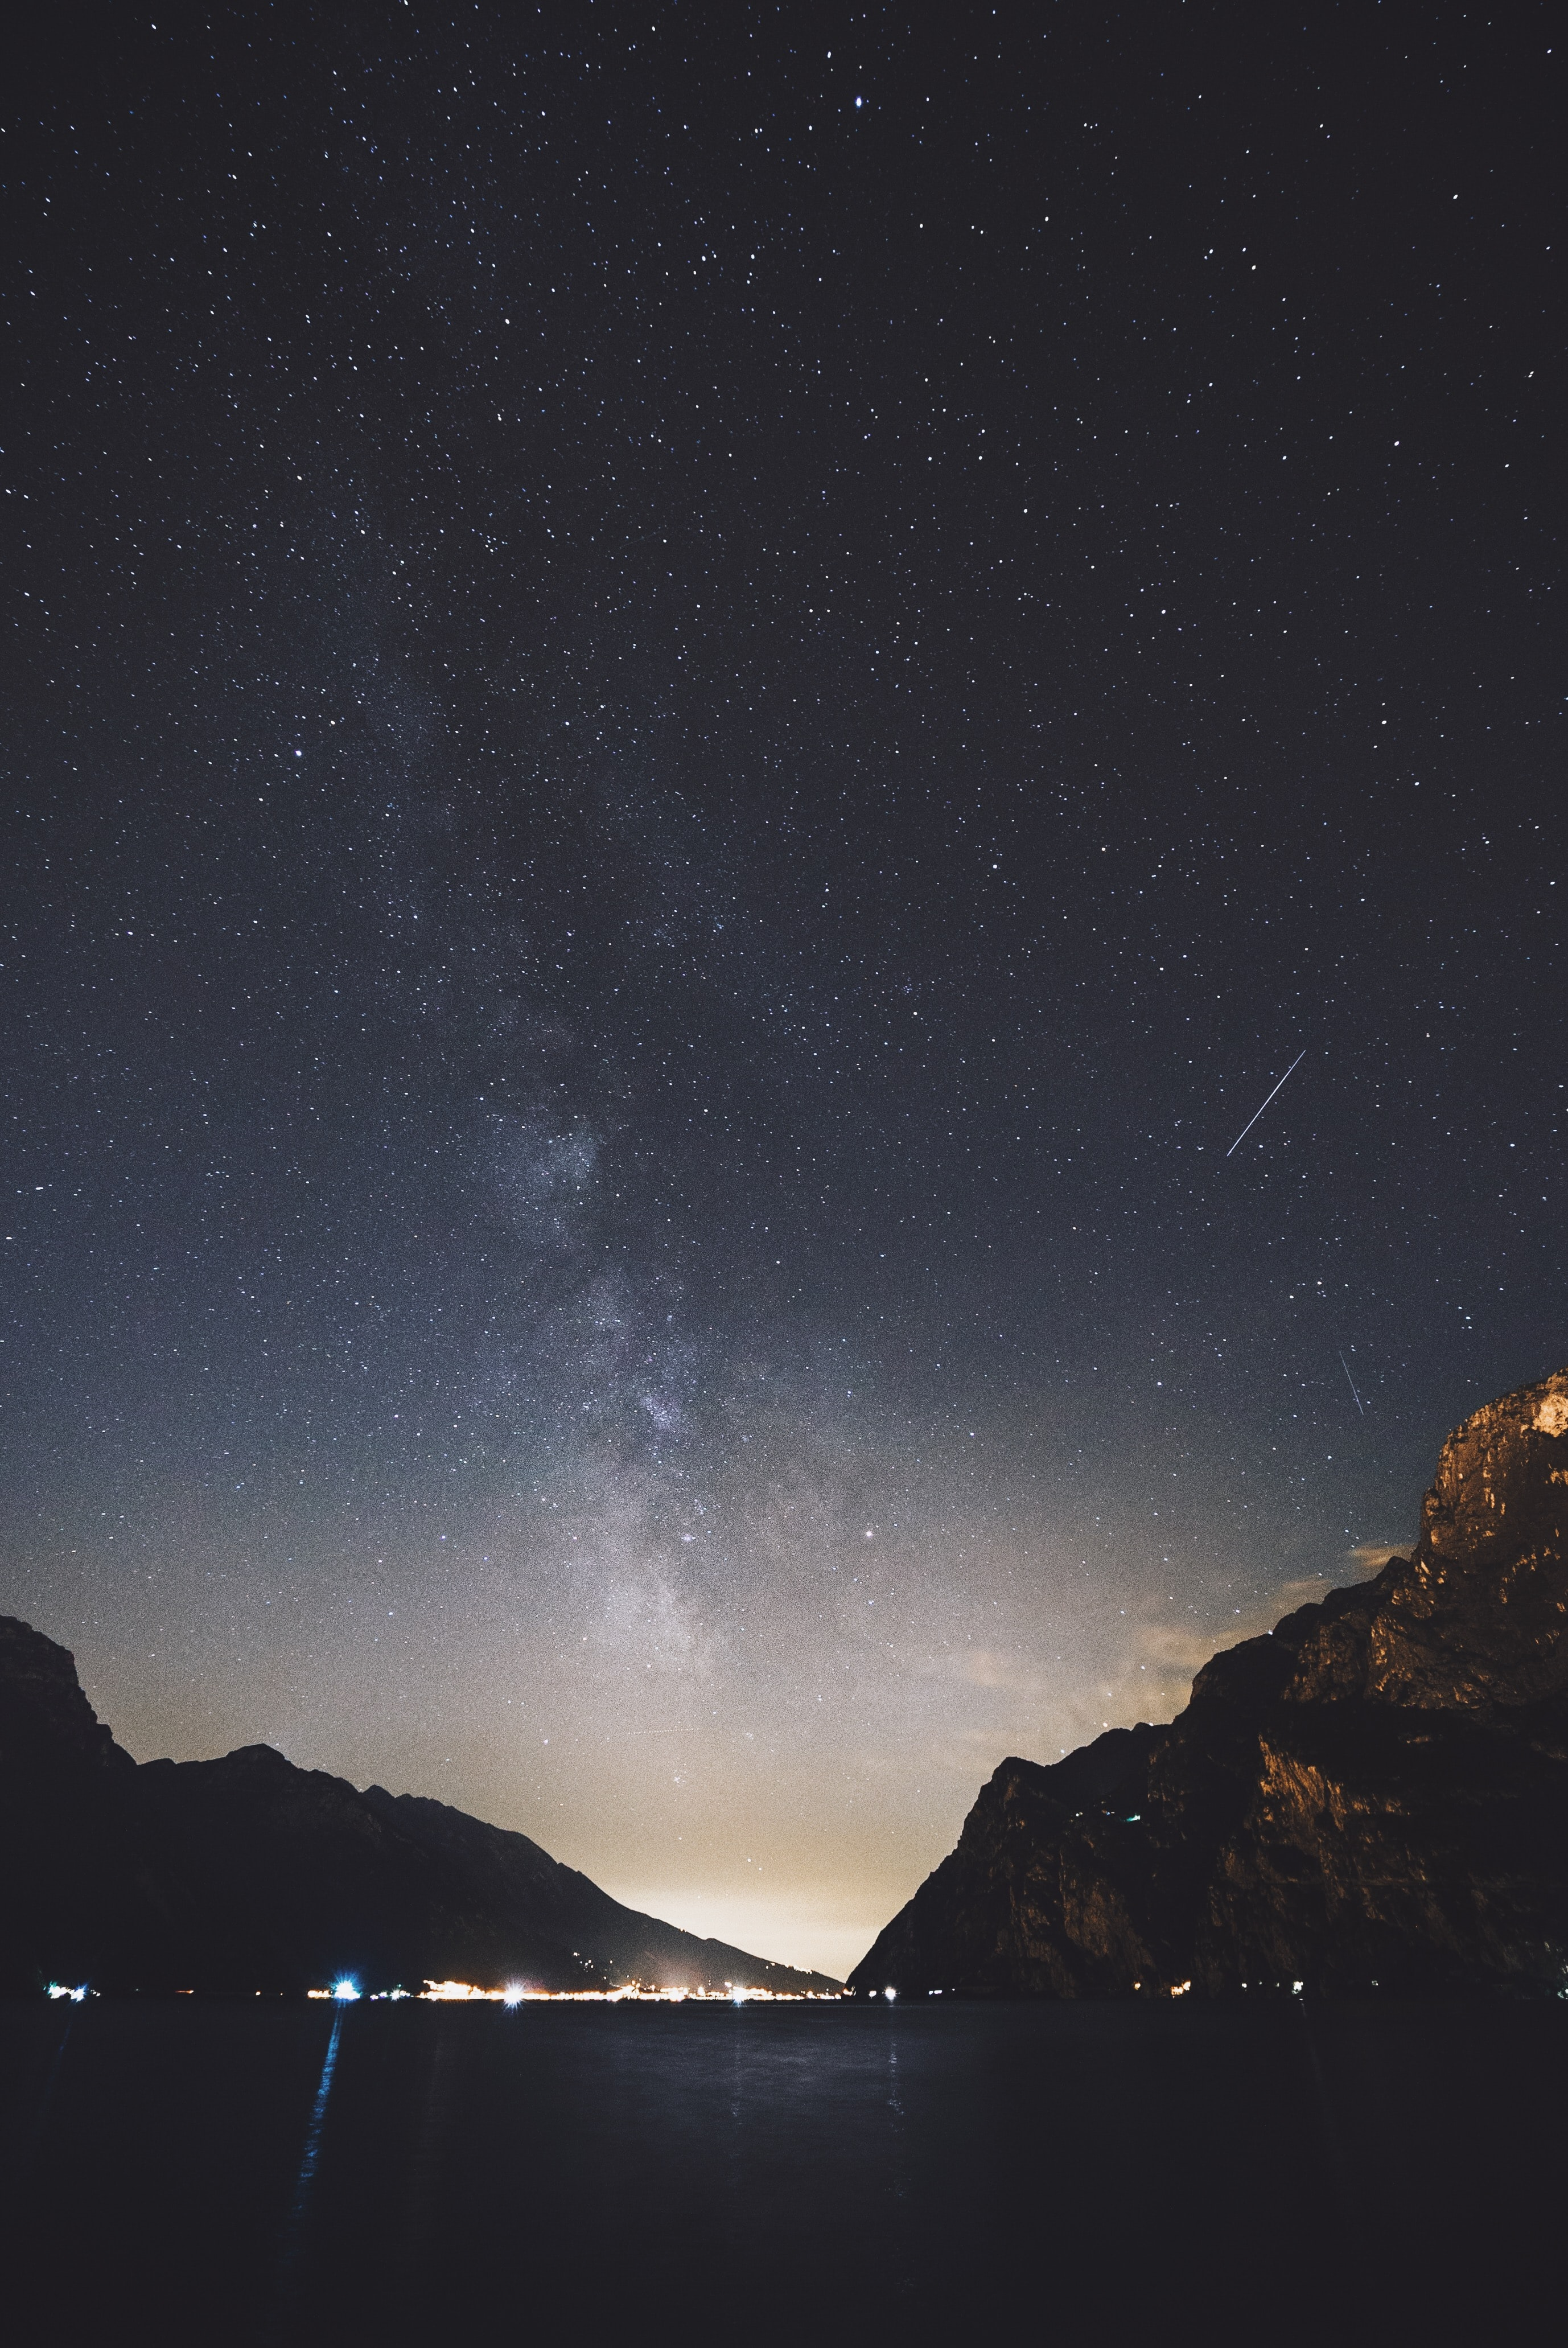 The milky way and a shooting star over the lake and mountain at Riva del Garda